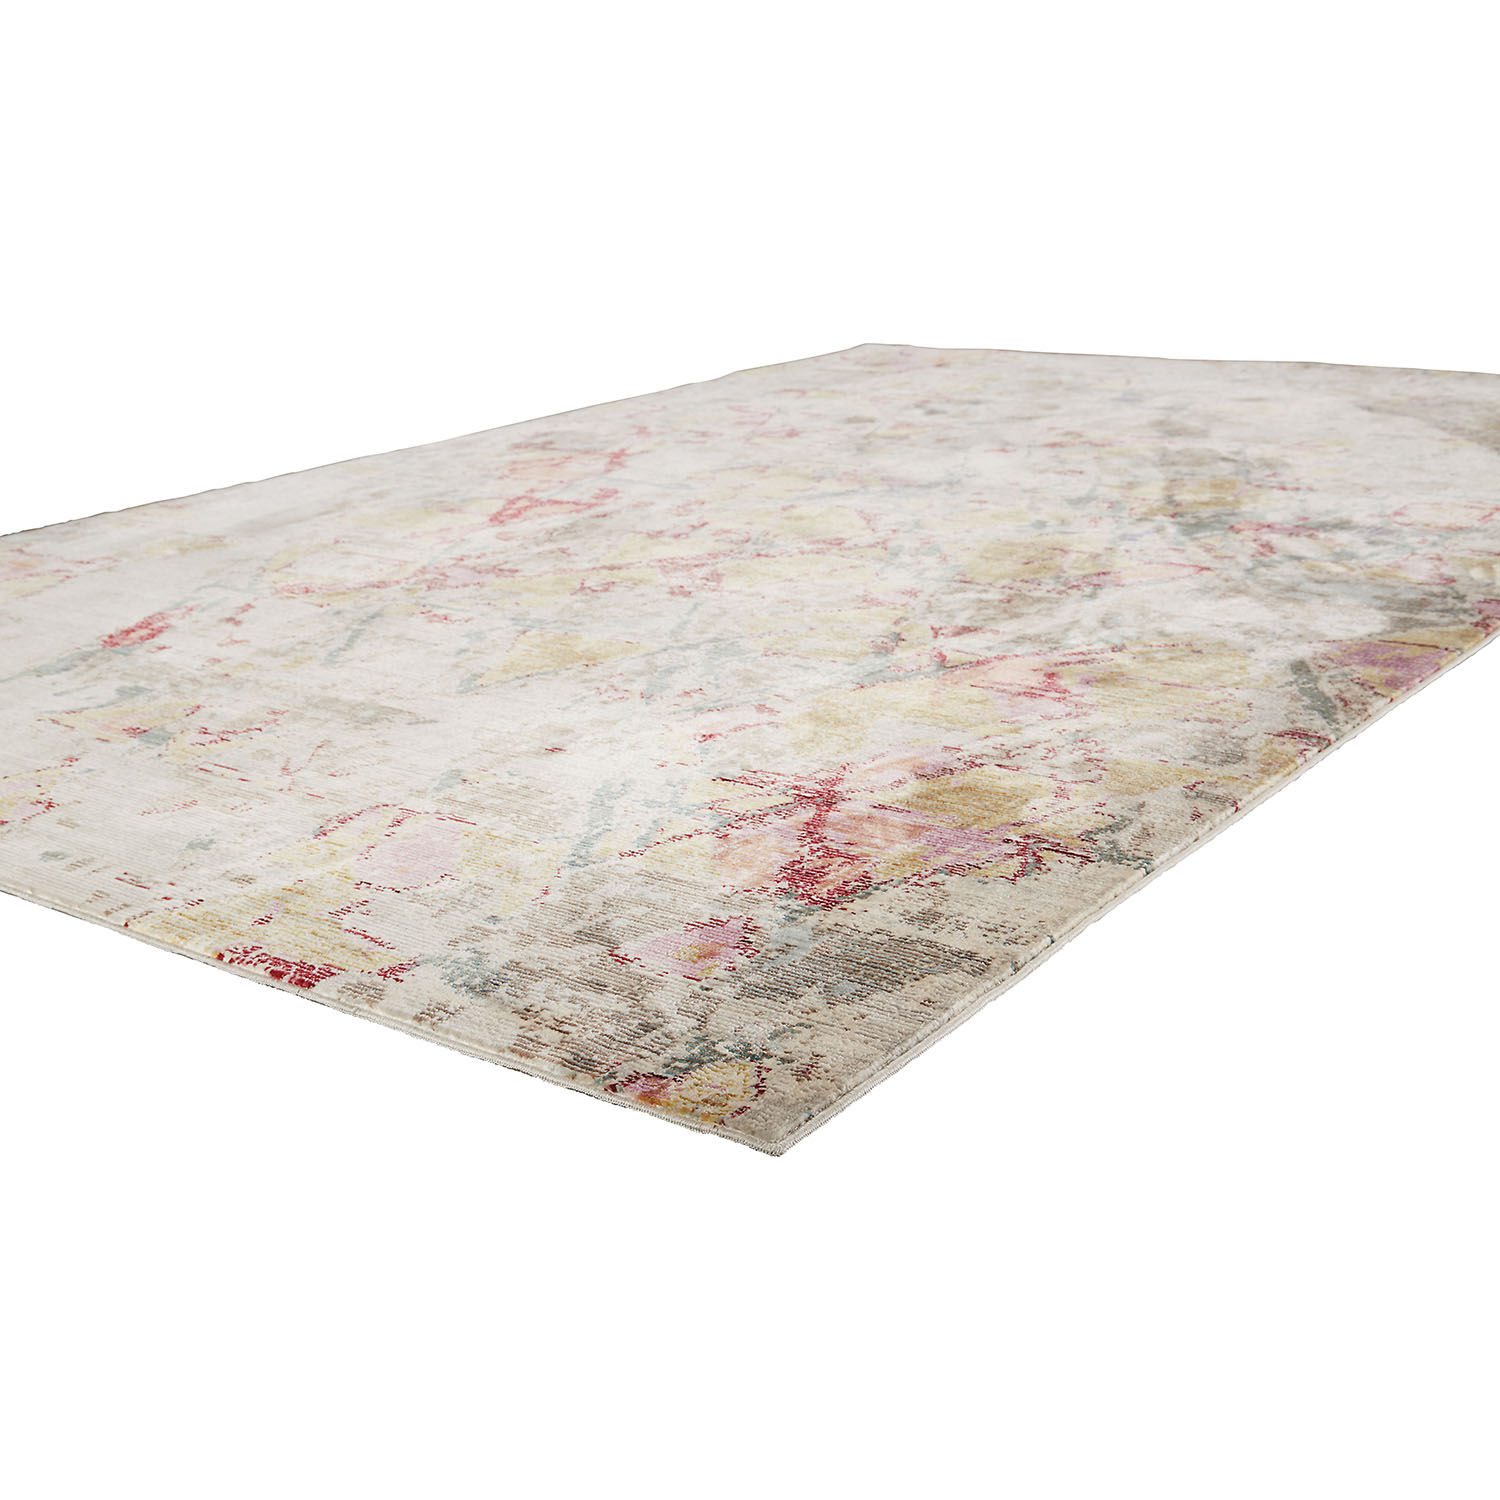 Jaipur Ceres CER05 Ixion Chateau Gray Rug